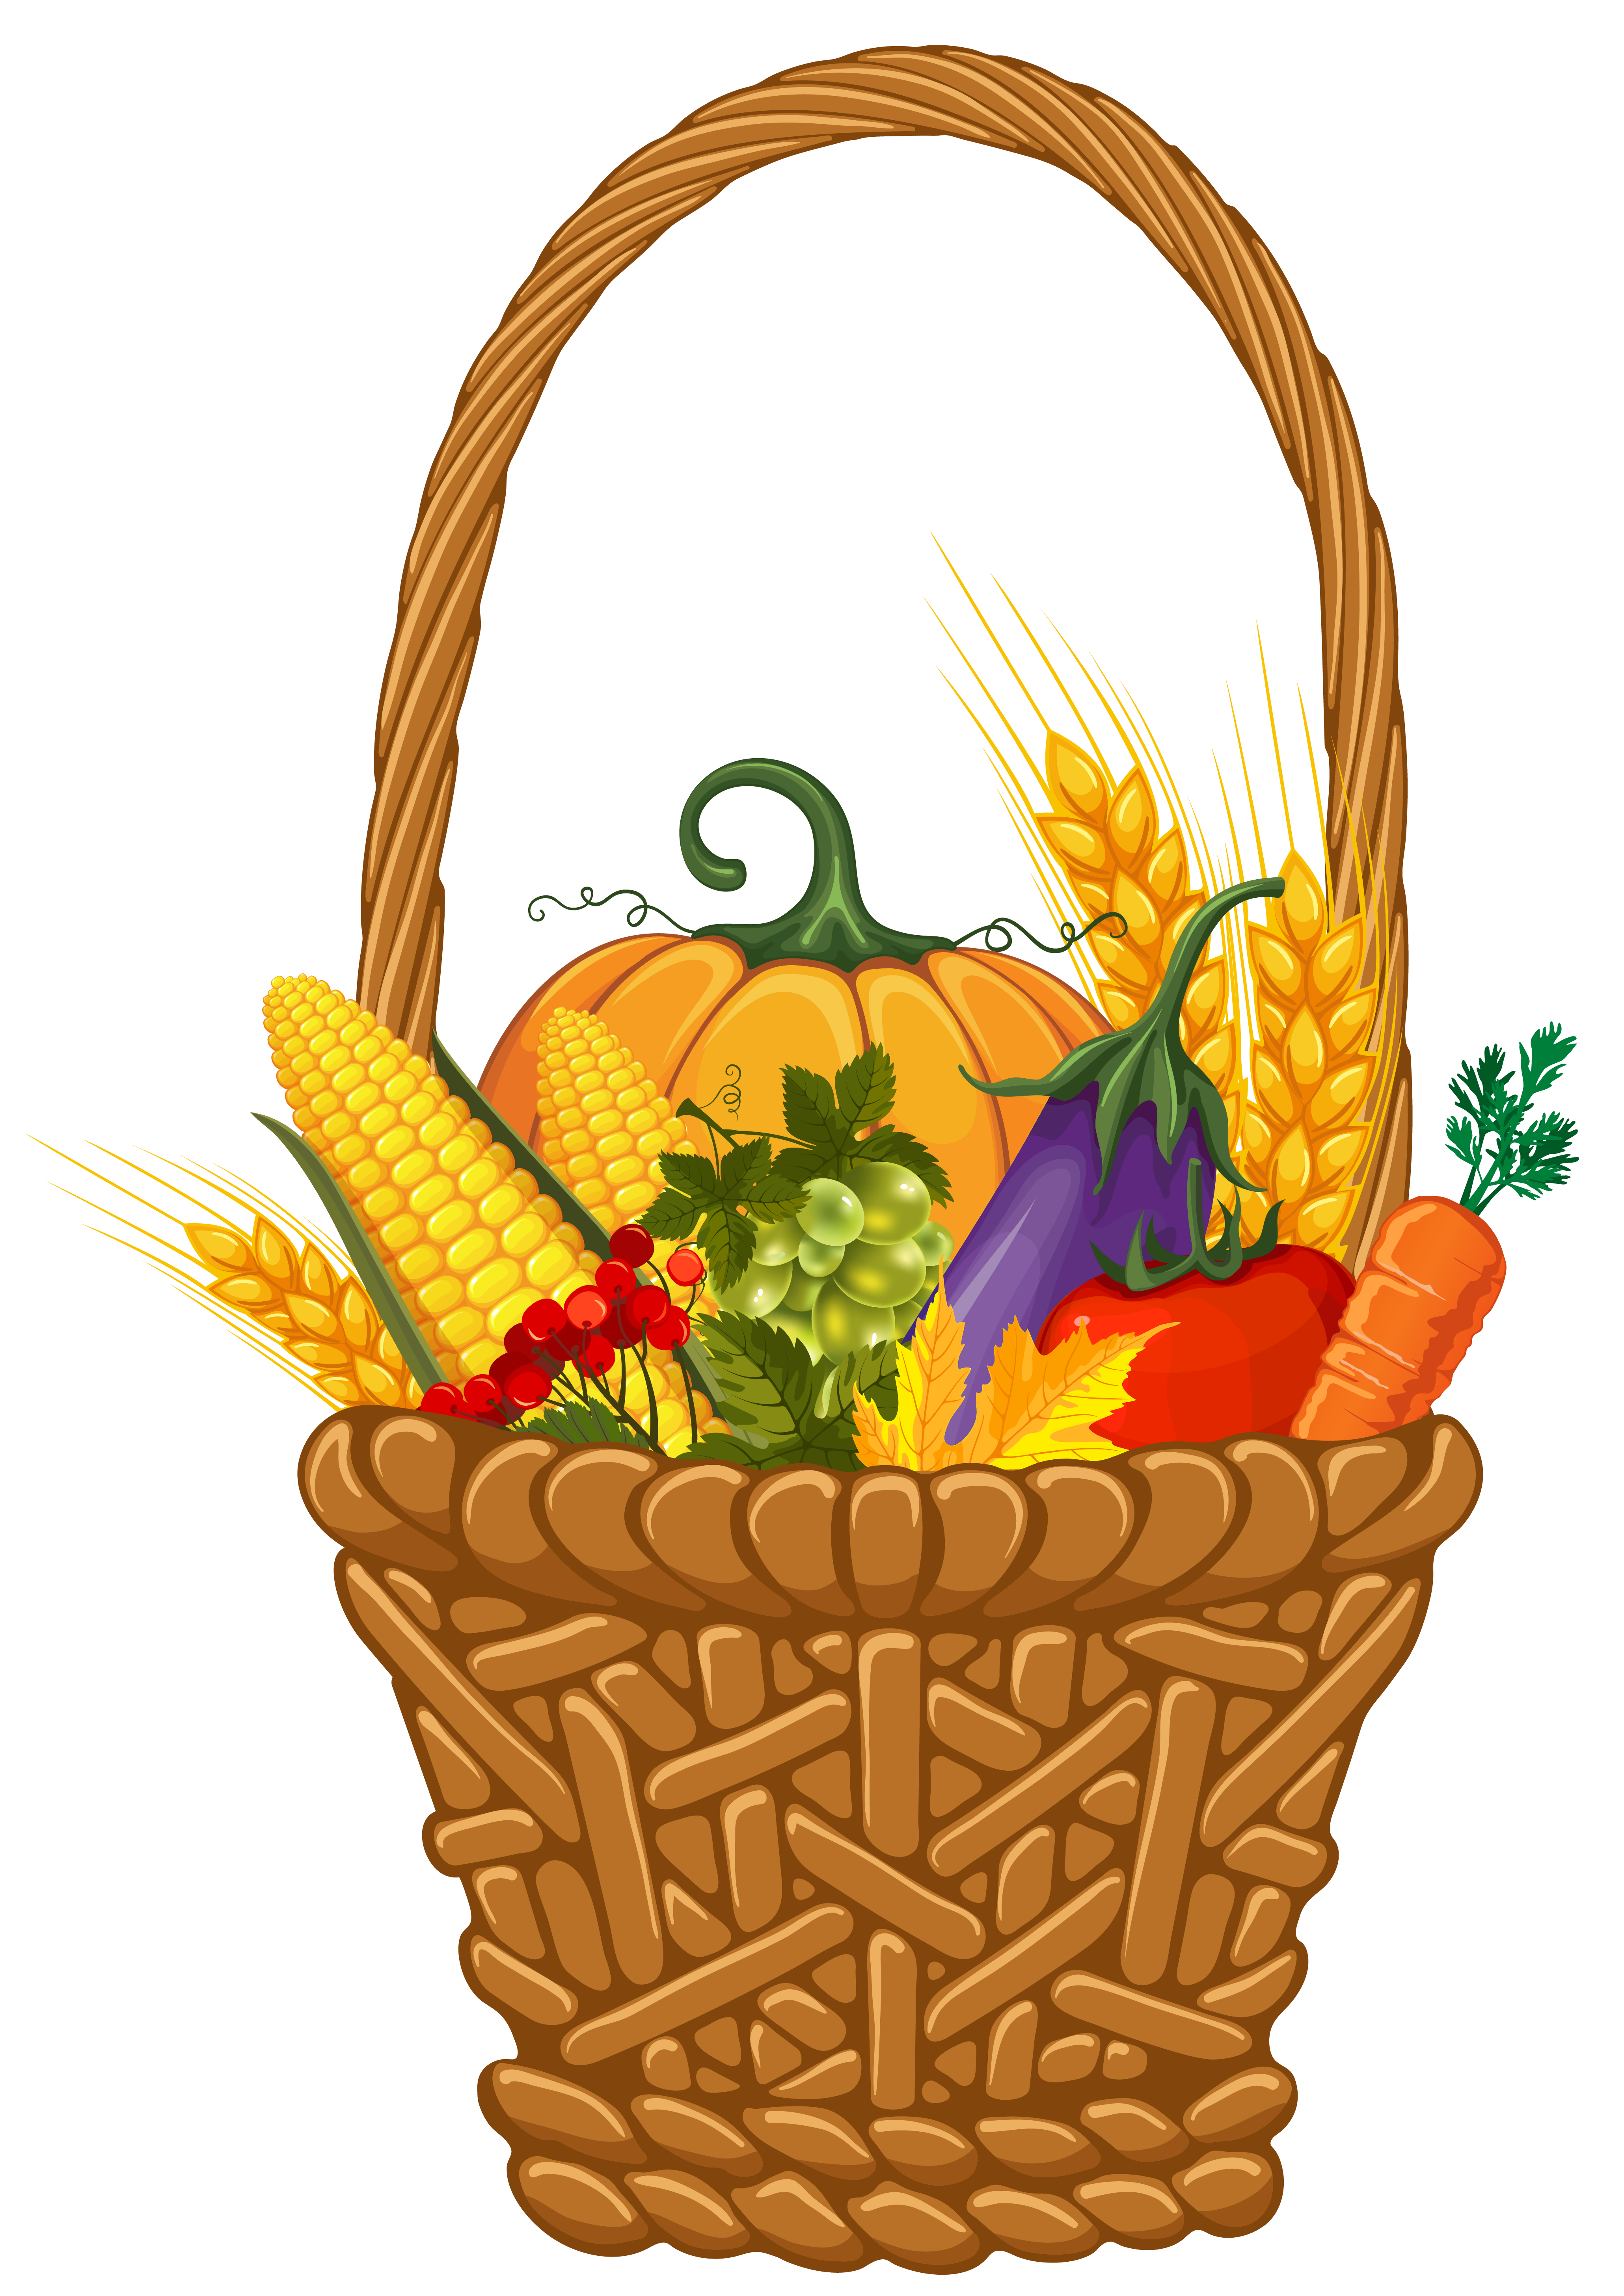 4120x5826 Fall Harvest Basket Png Clipart Imageu200b Gallery Yopriceville